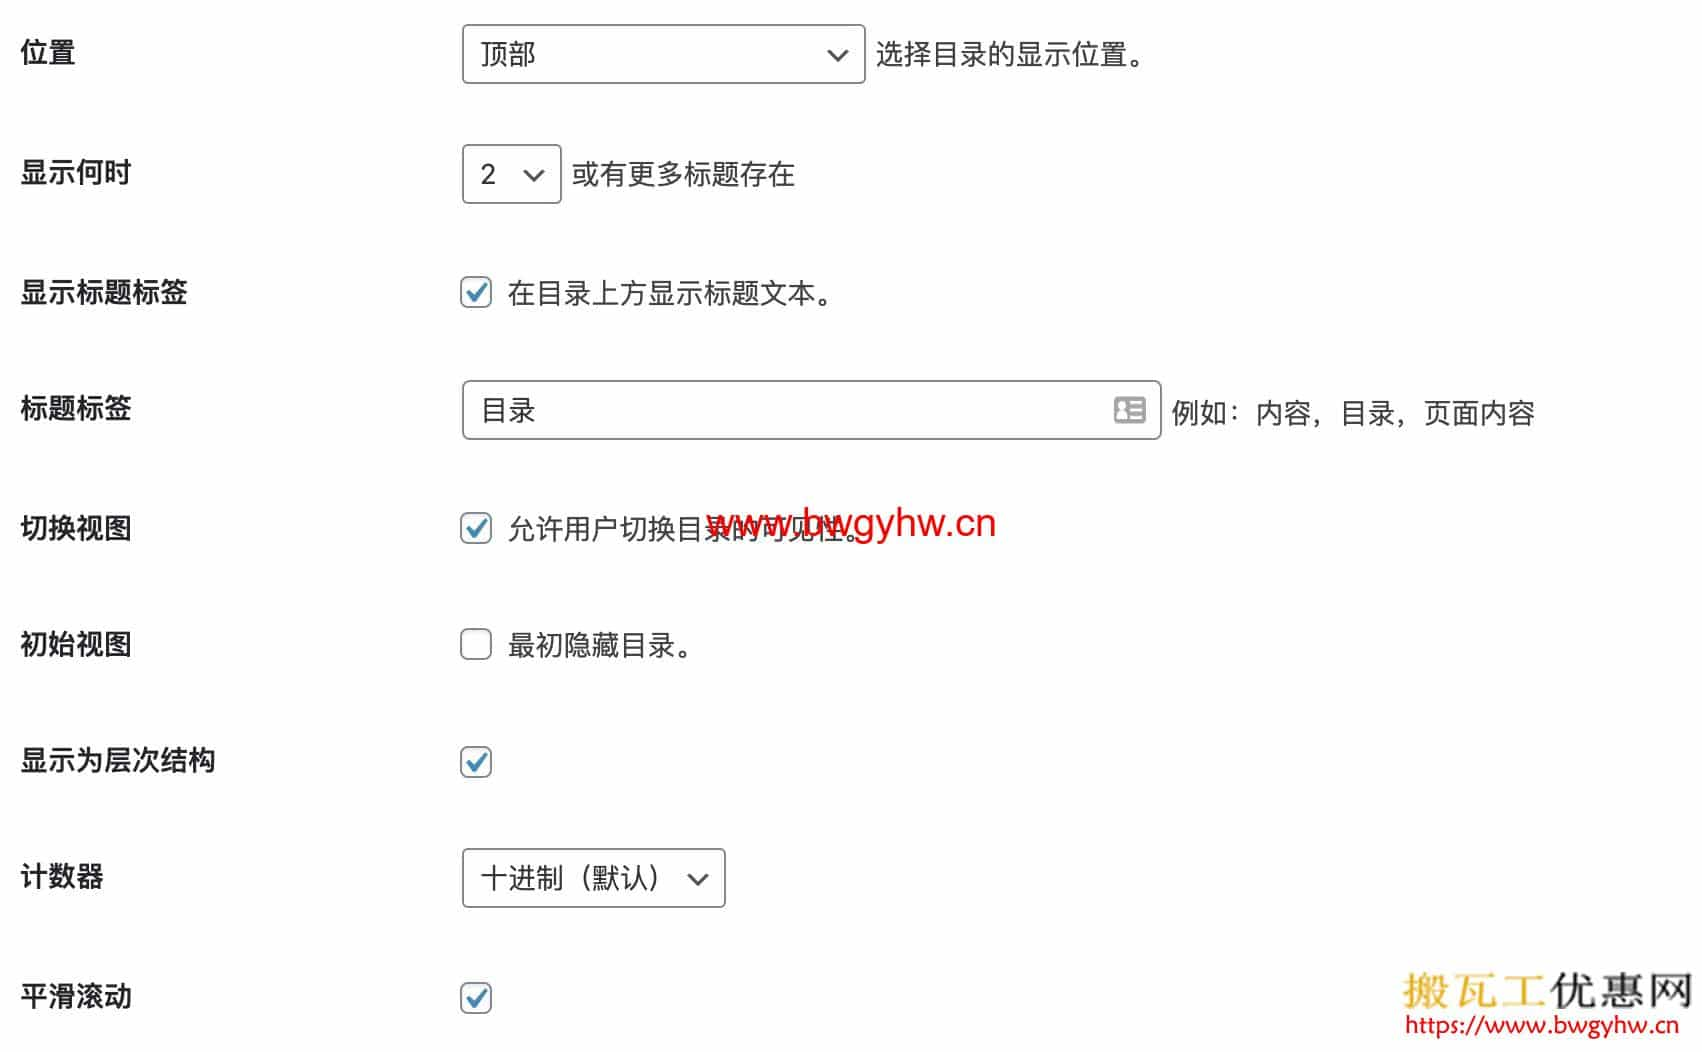 Easy Table of Contents设置教程